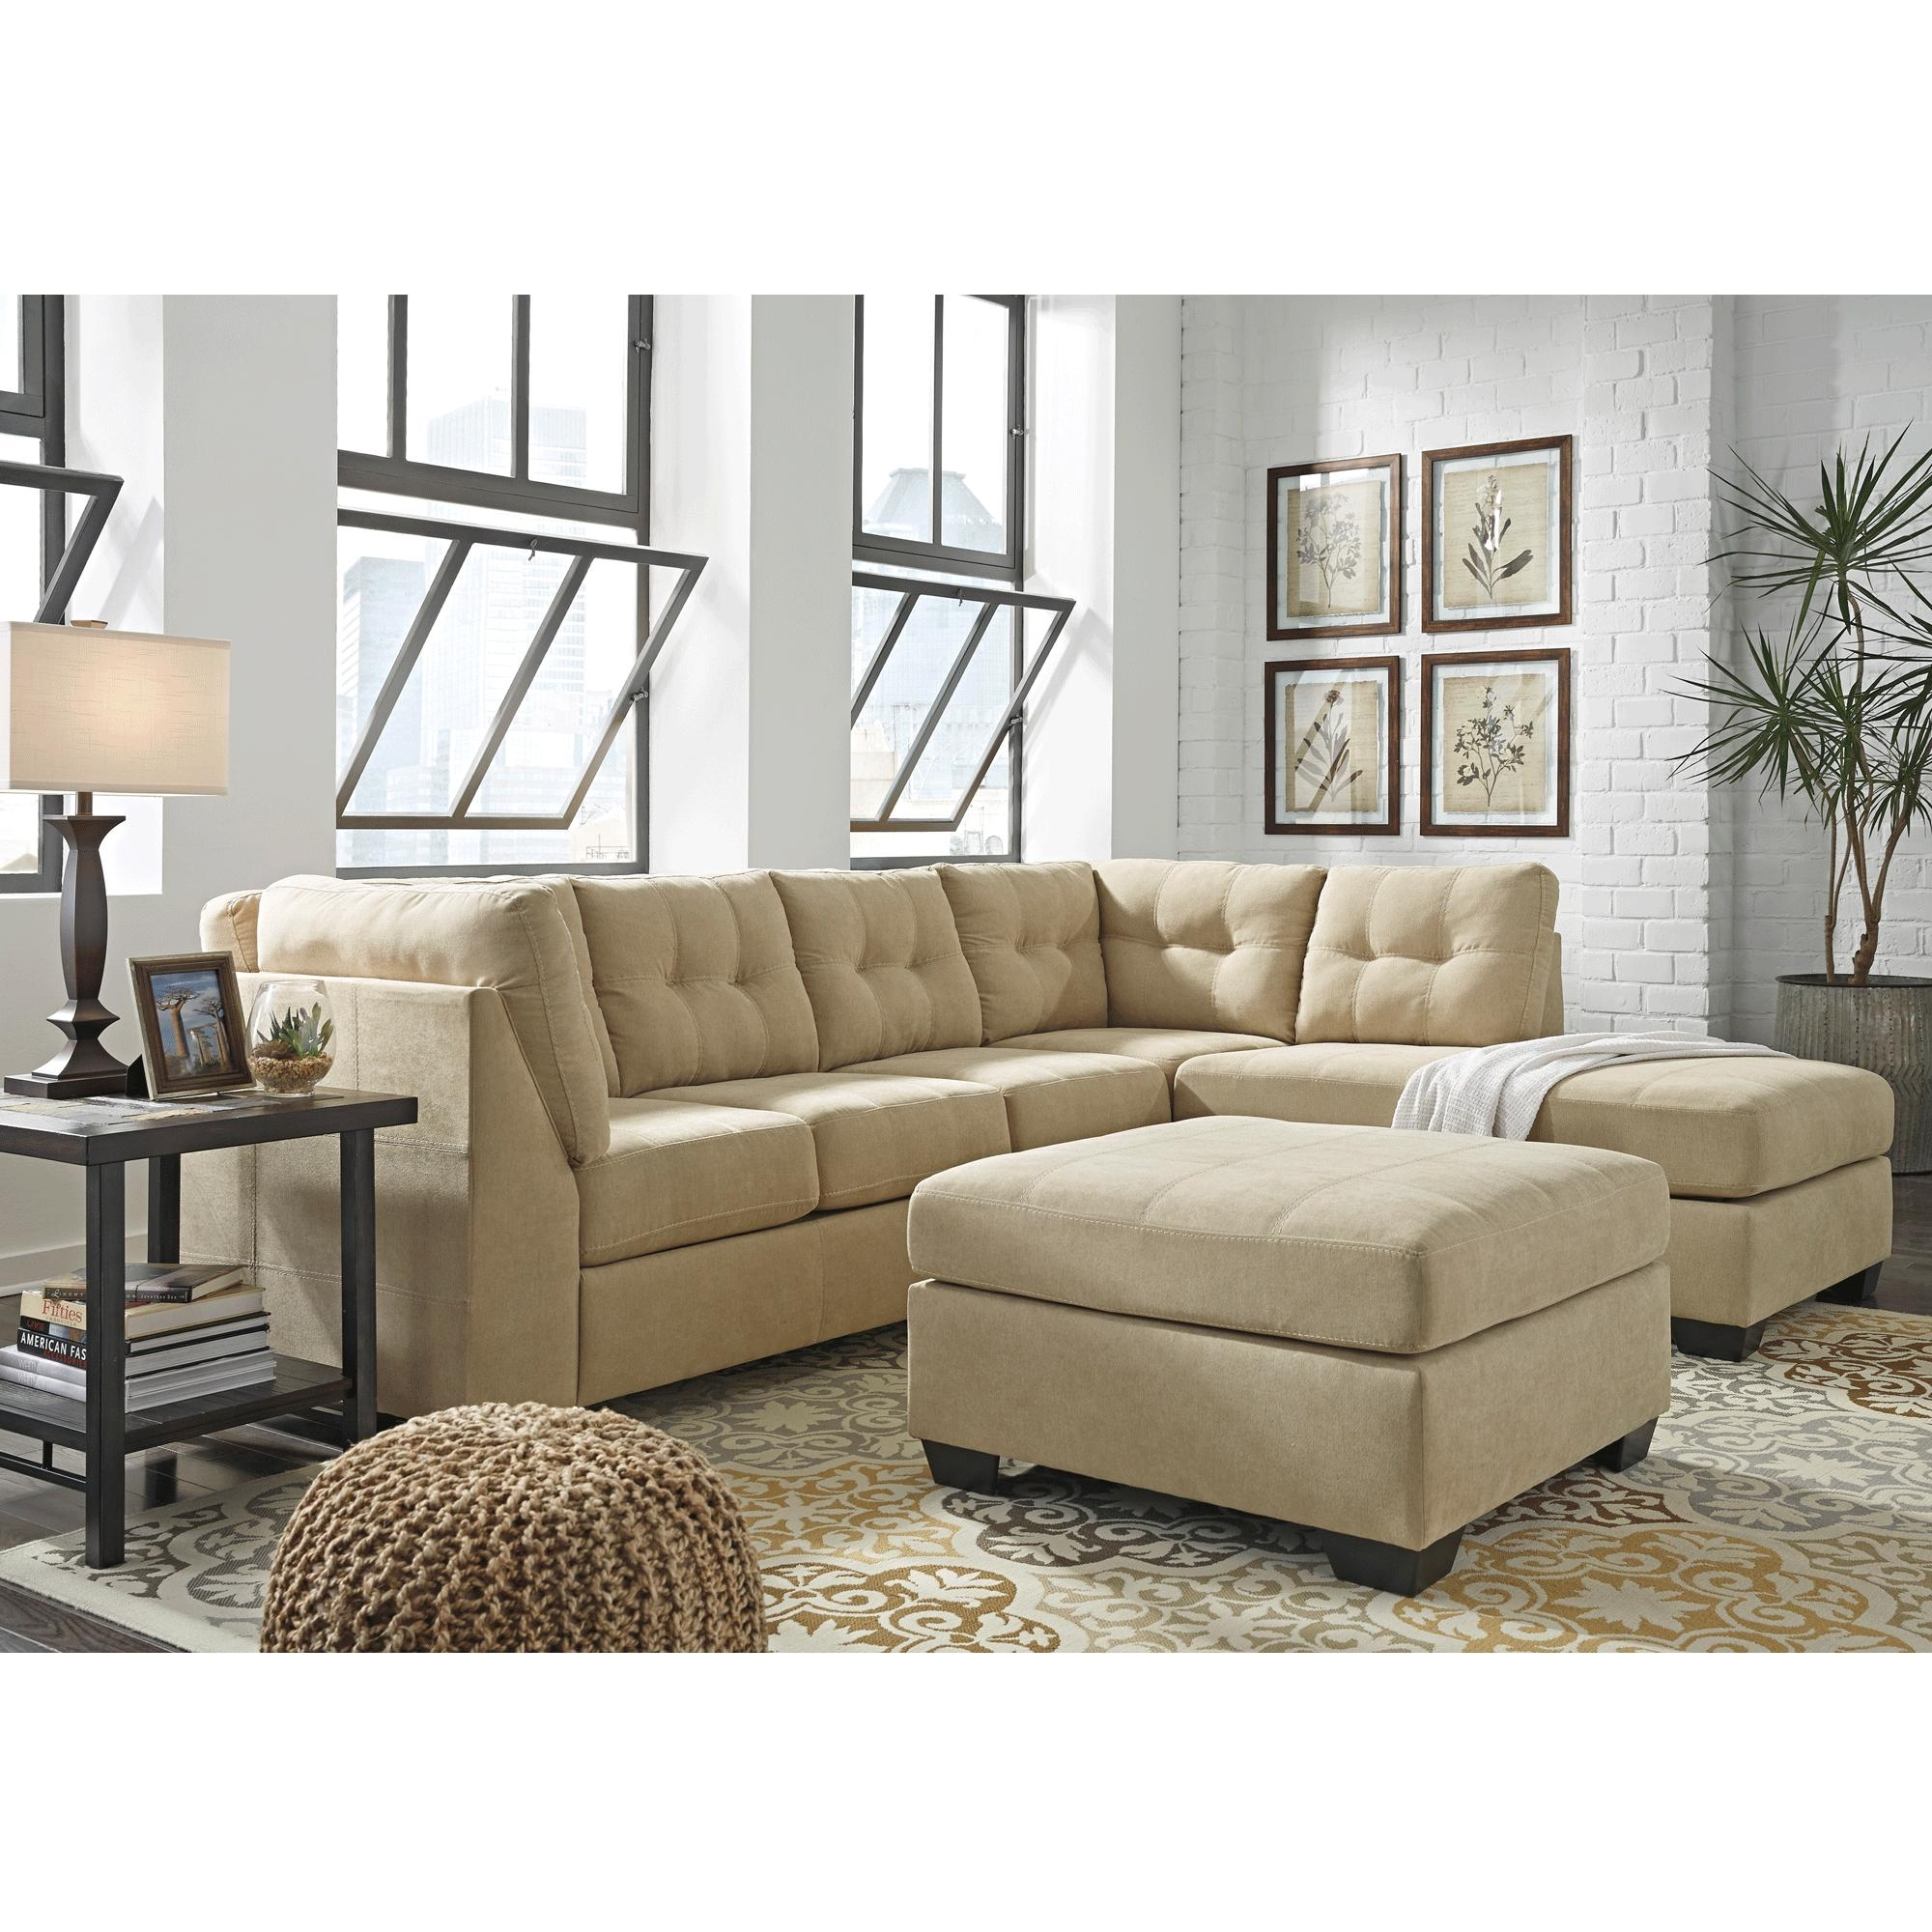 Sofas Center : Fashionable Down Sectional Sofa Color Options Home Throughout Down Sectional Sofa (View 8 of 15)